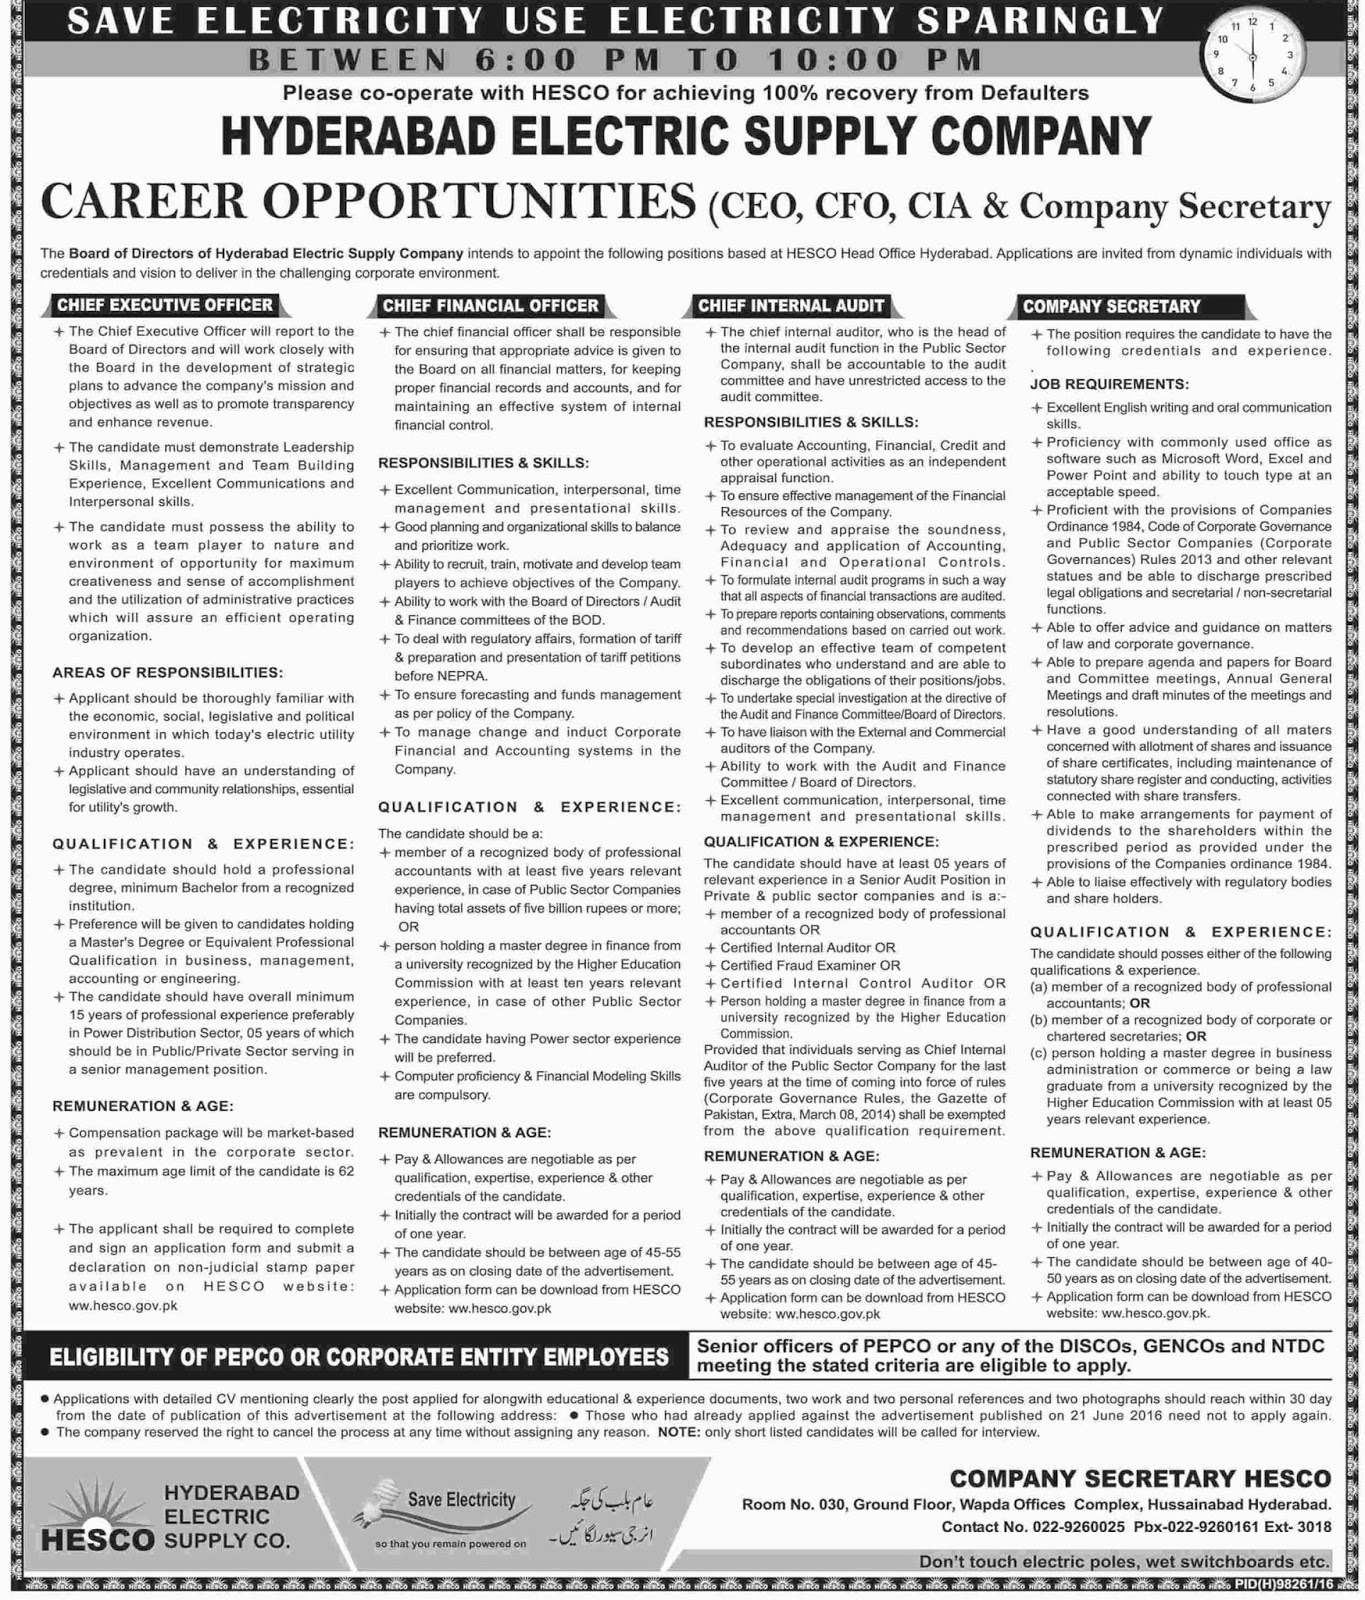 Hyderabad Electric Supply Company HESCO jobs